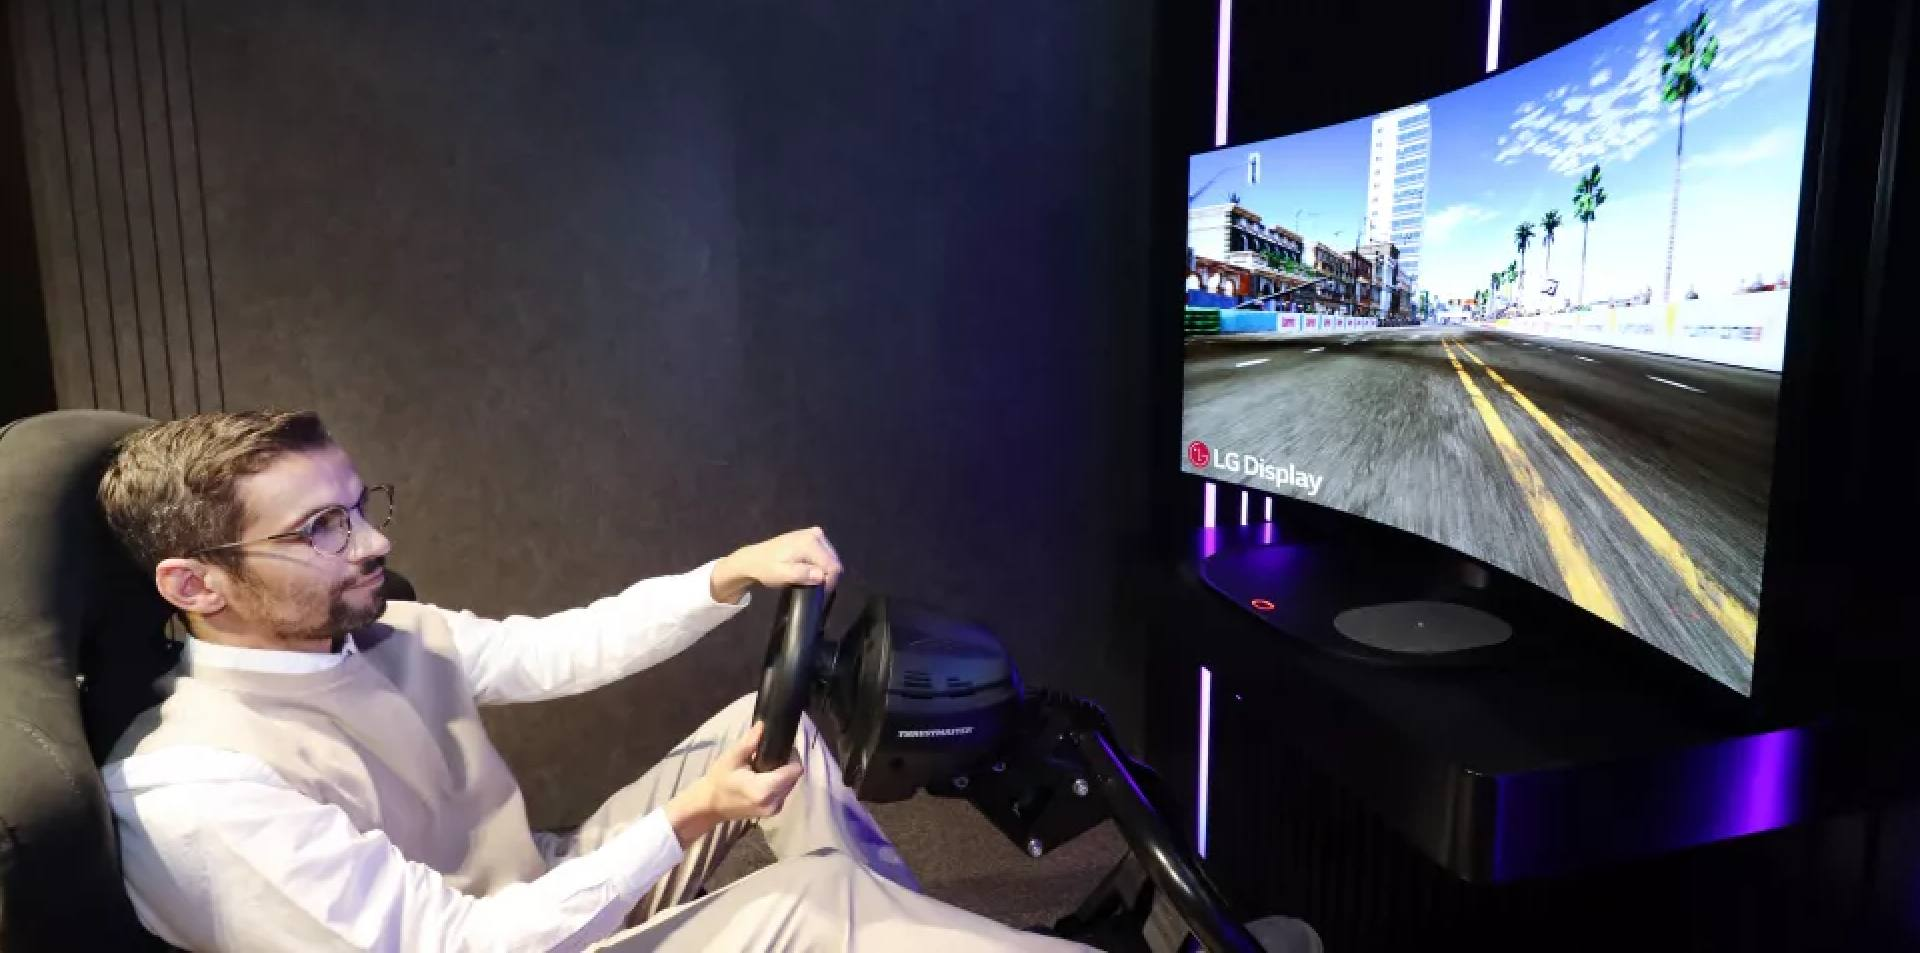 LG's 48-inch OLED TV and monitor, The future of flexible screens